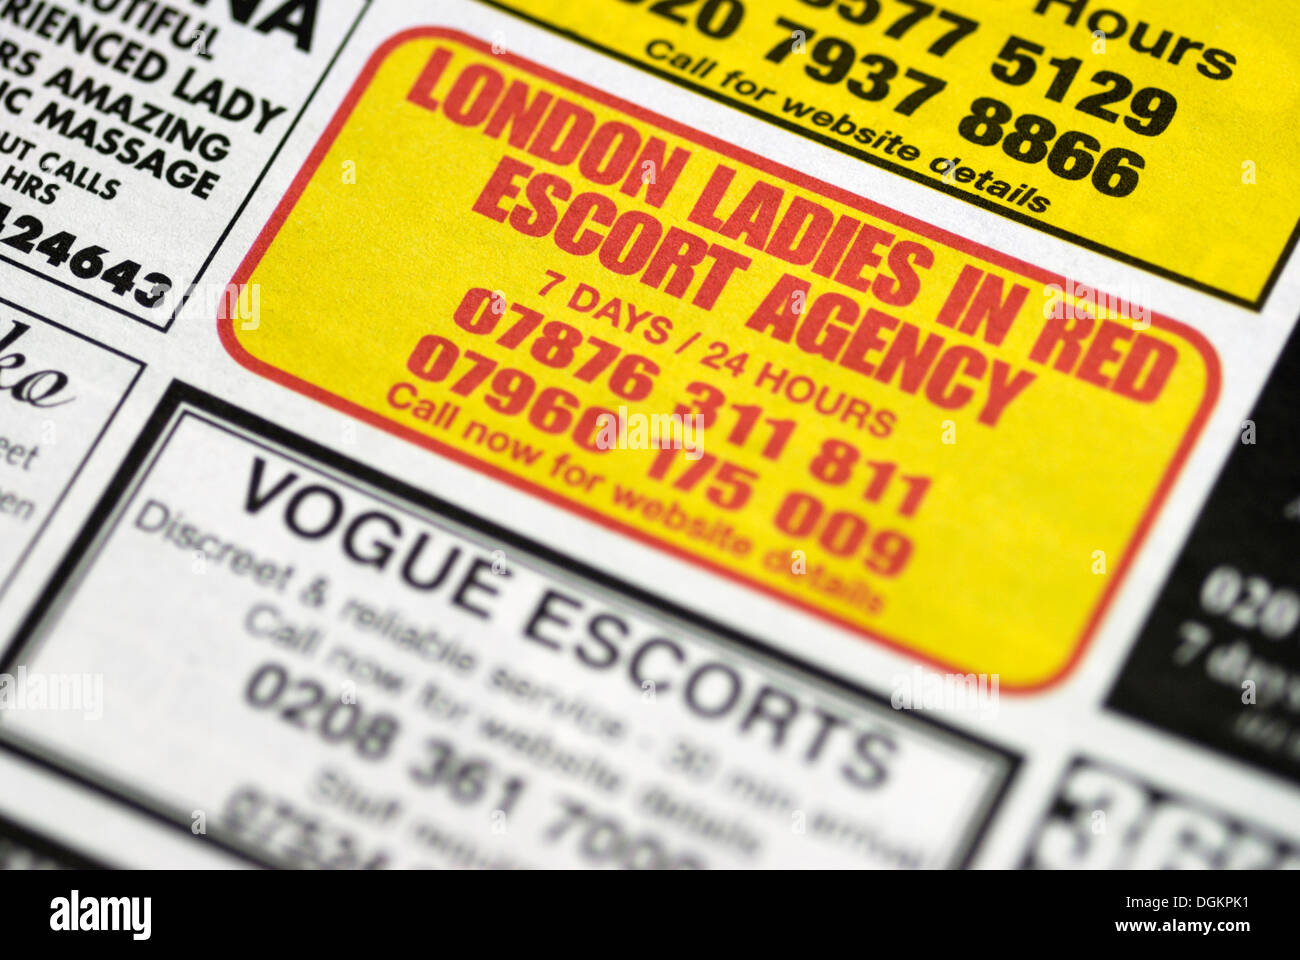 Escort adverts in the classified section of a local newspaper. - Stock Image